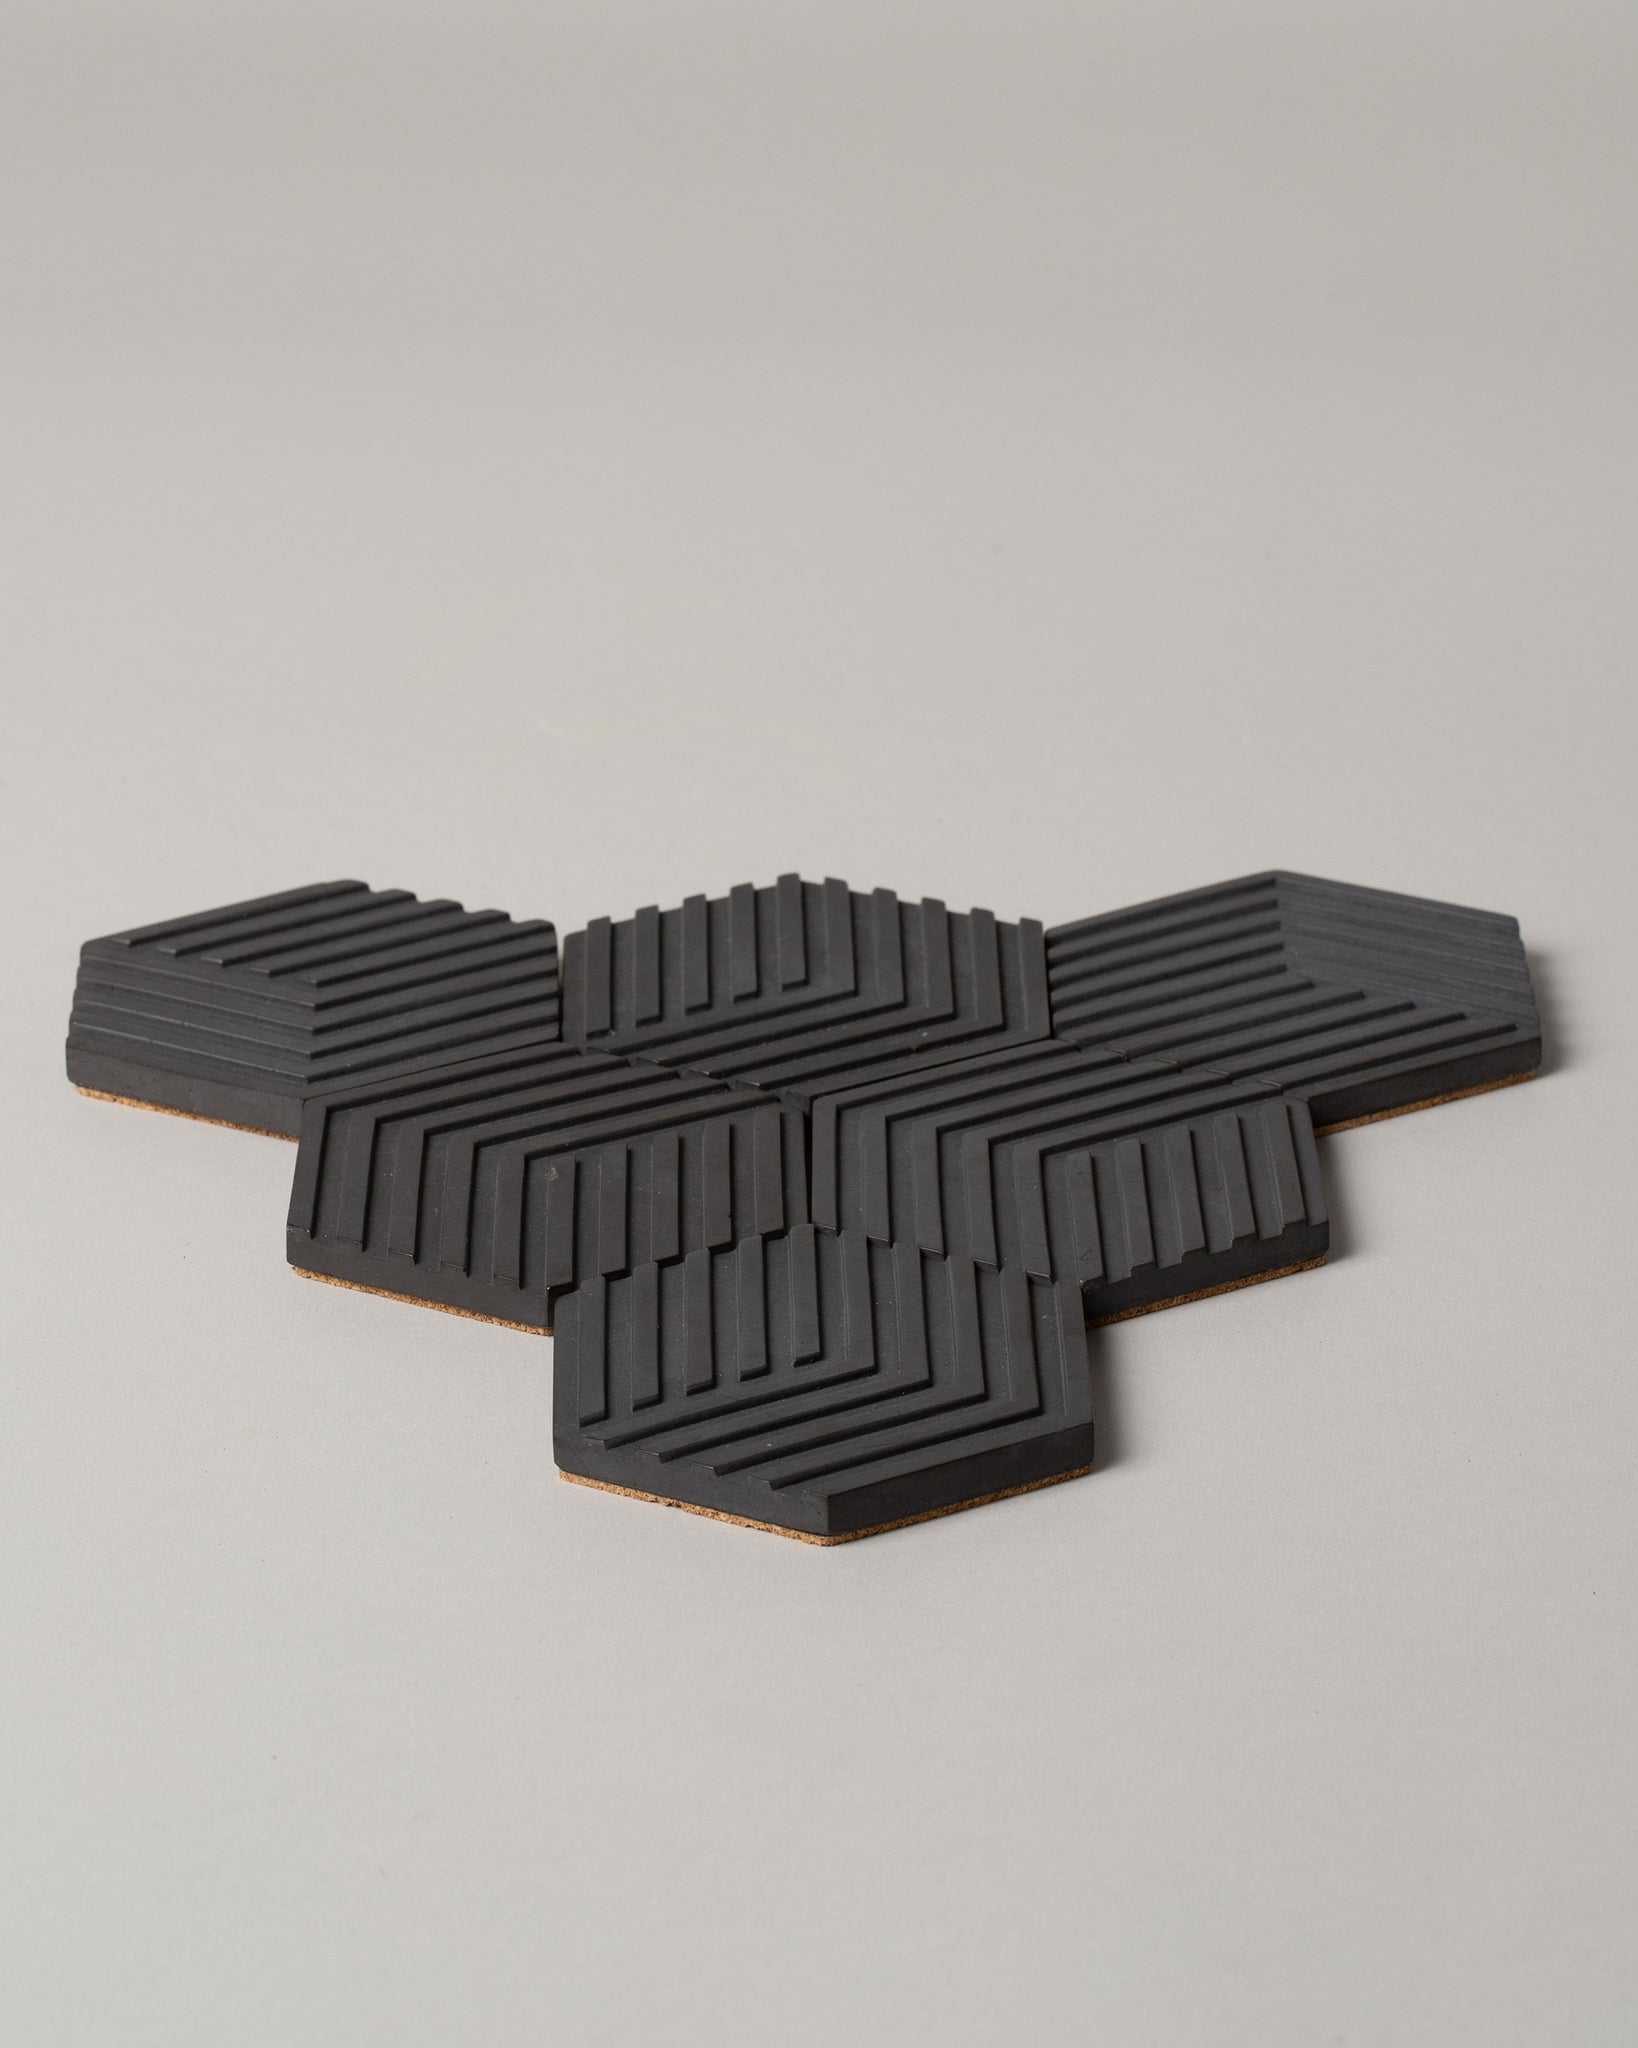 Table Tile Concrete Coasters in Charcoal Gray